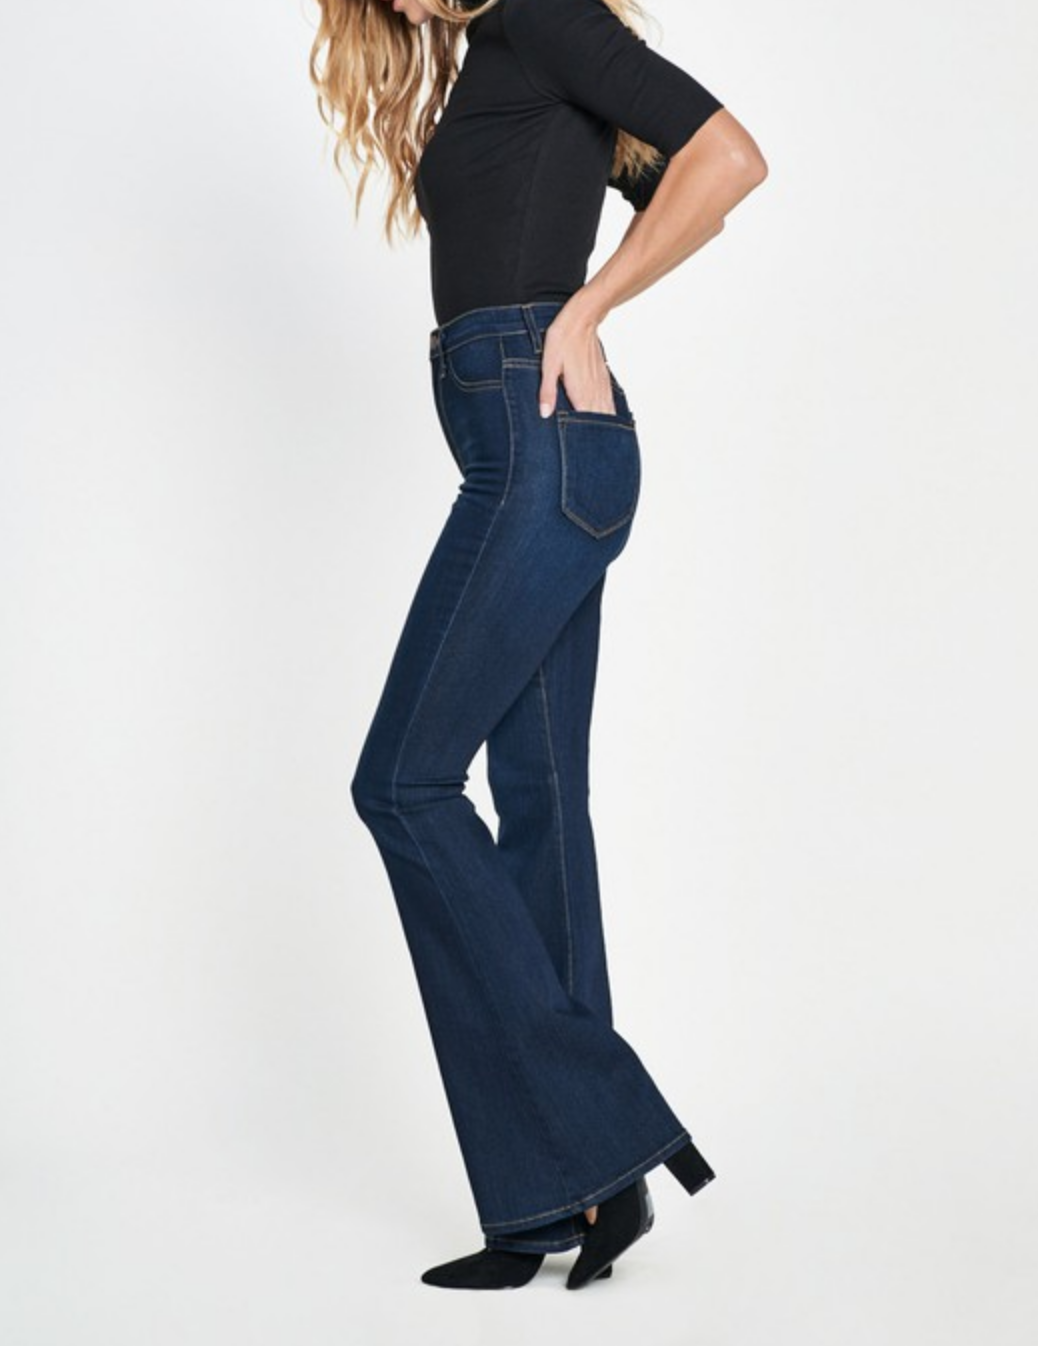 Vibrant A League of Flare Own Jeans